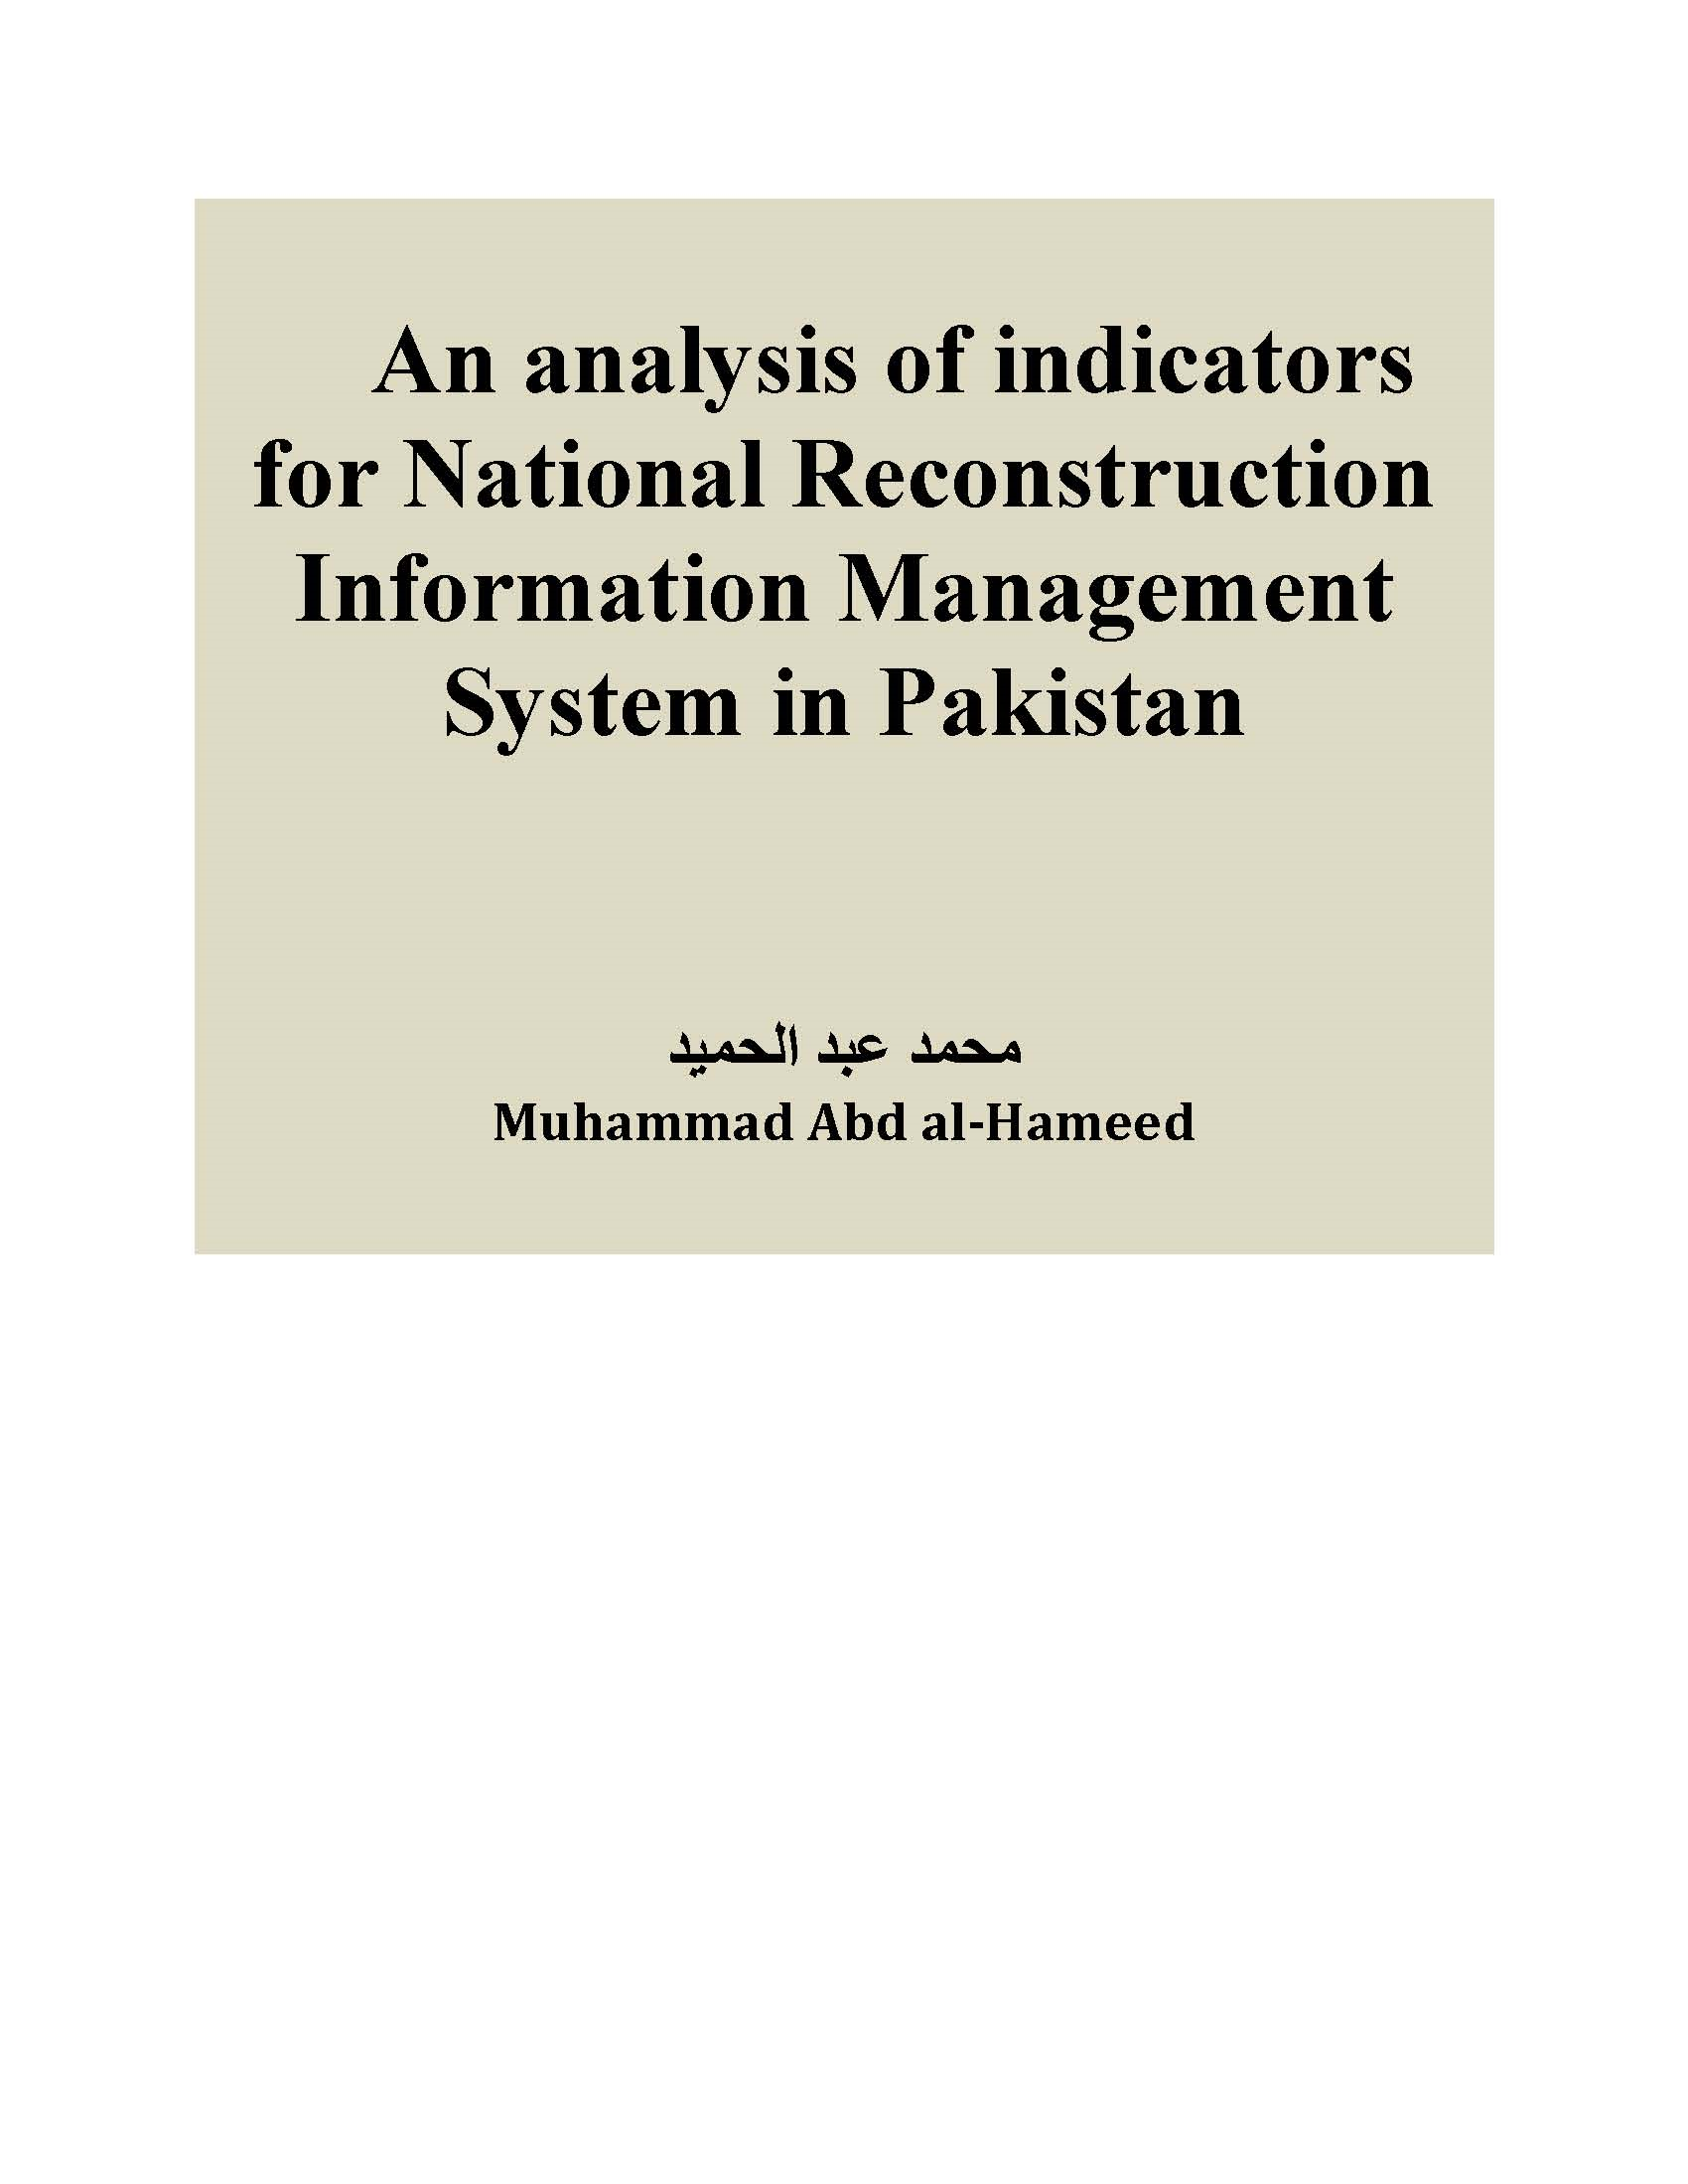 An analysis of indicators for National Reconstruction Information Management System for Pakistan